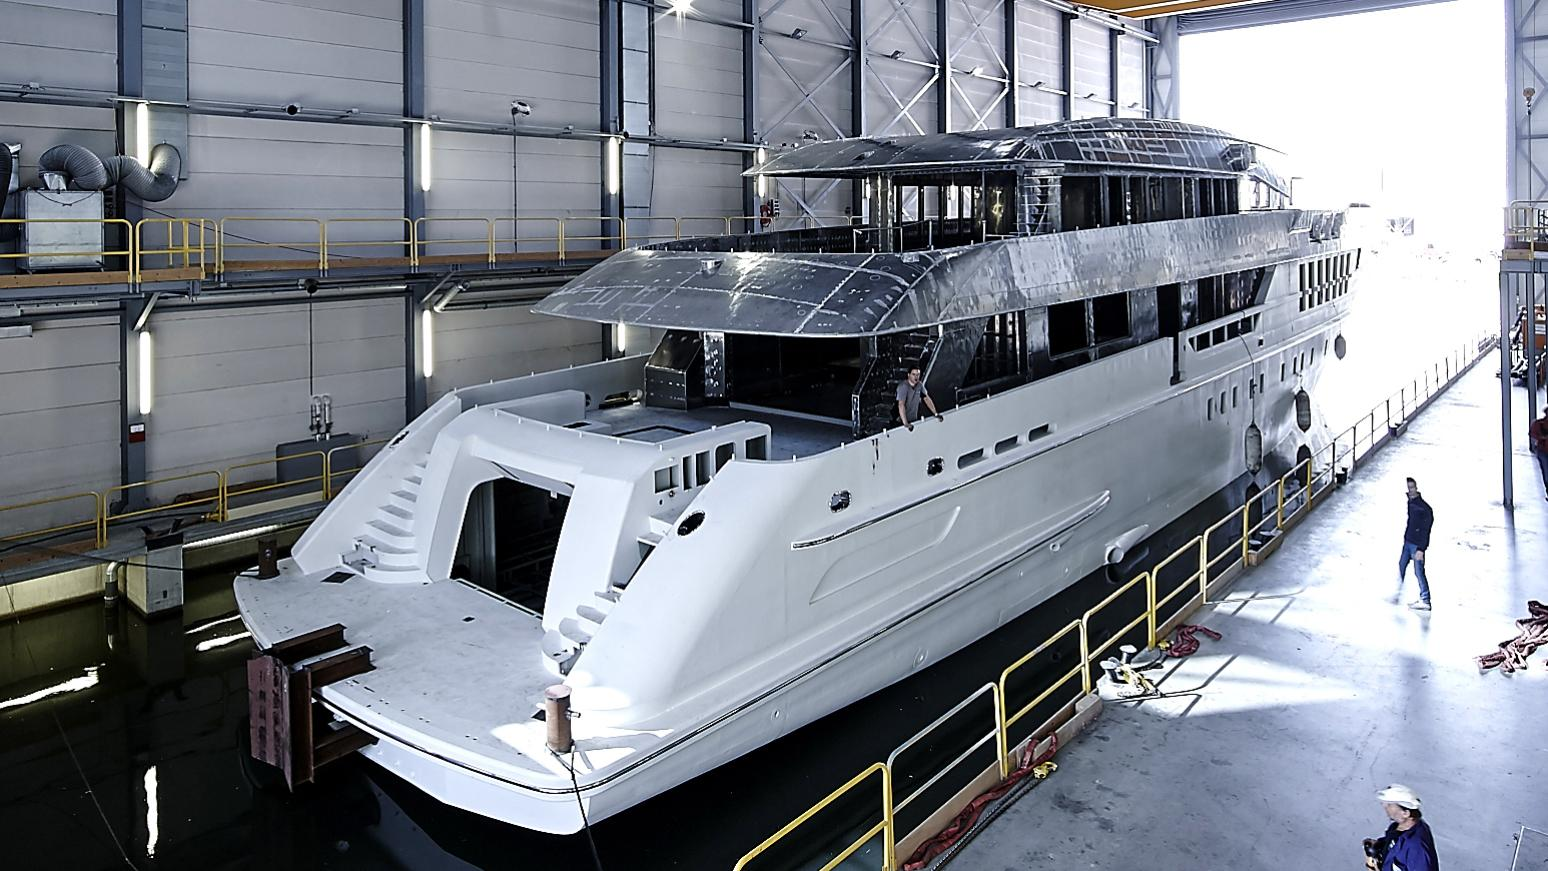 laurentia motoryacht heesen yachts project alida 55m 2017 under construction